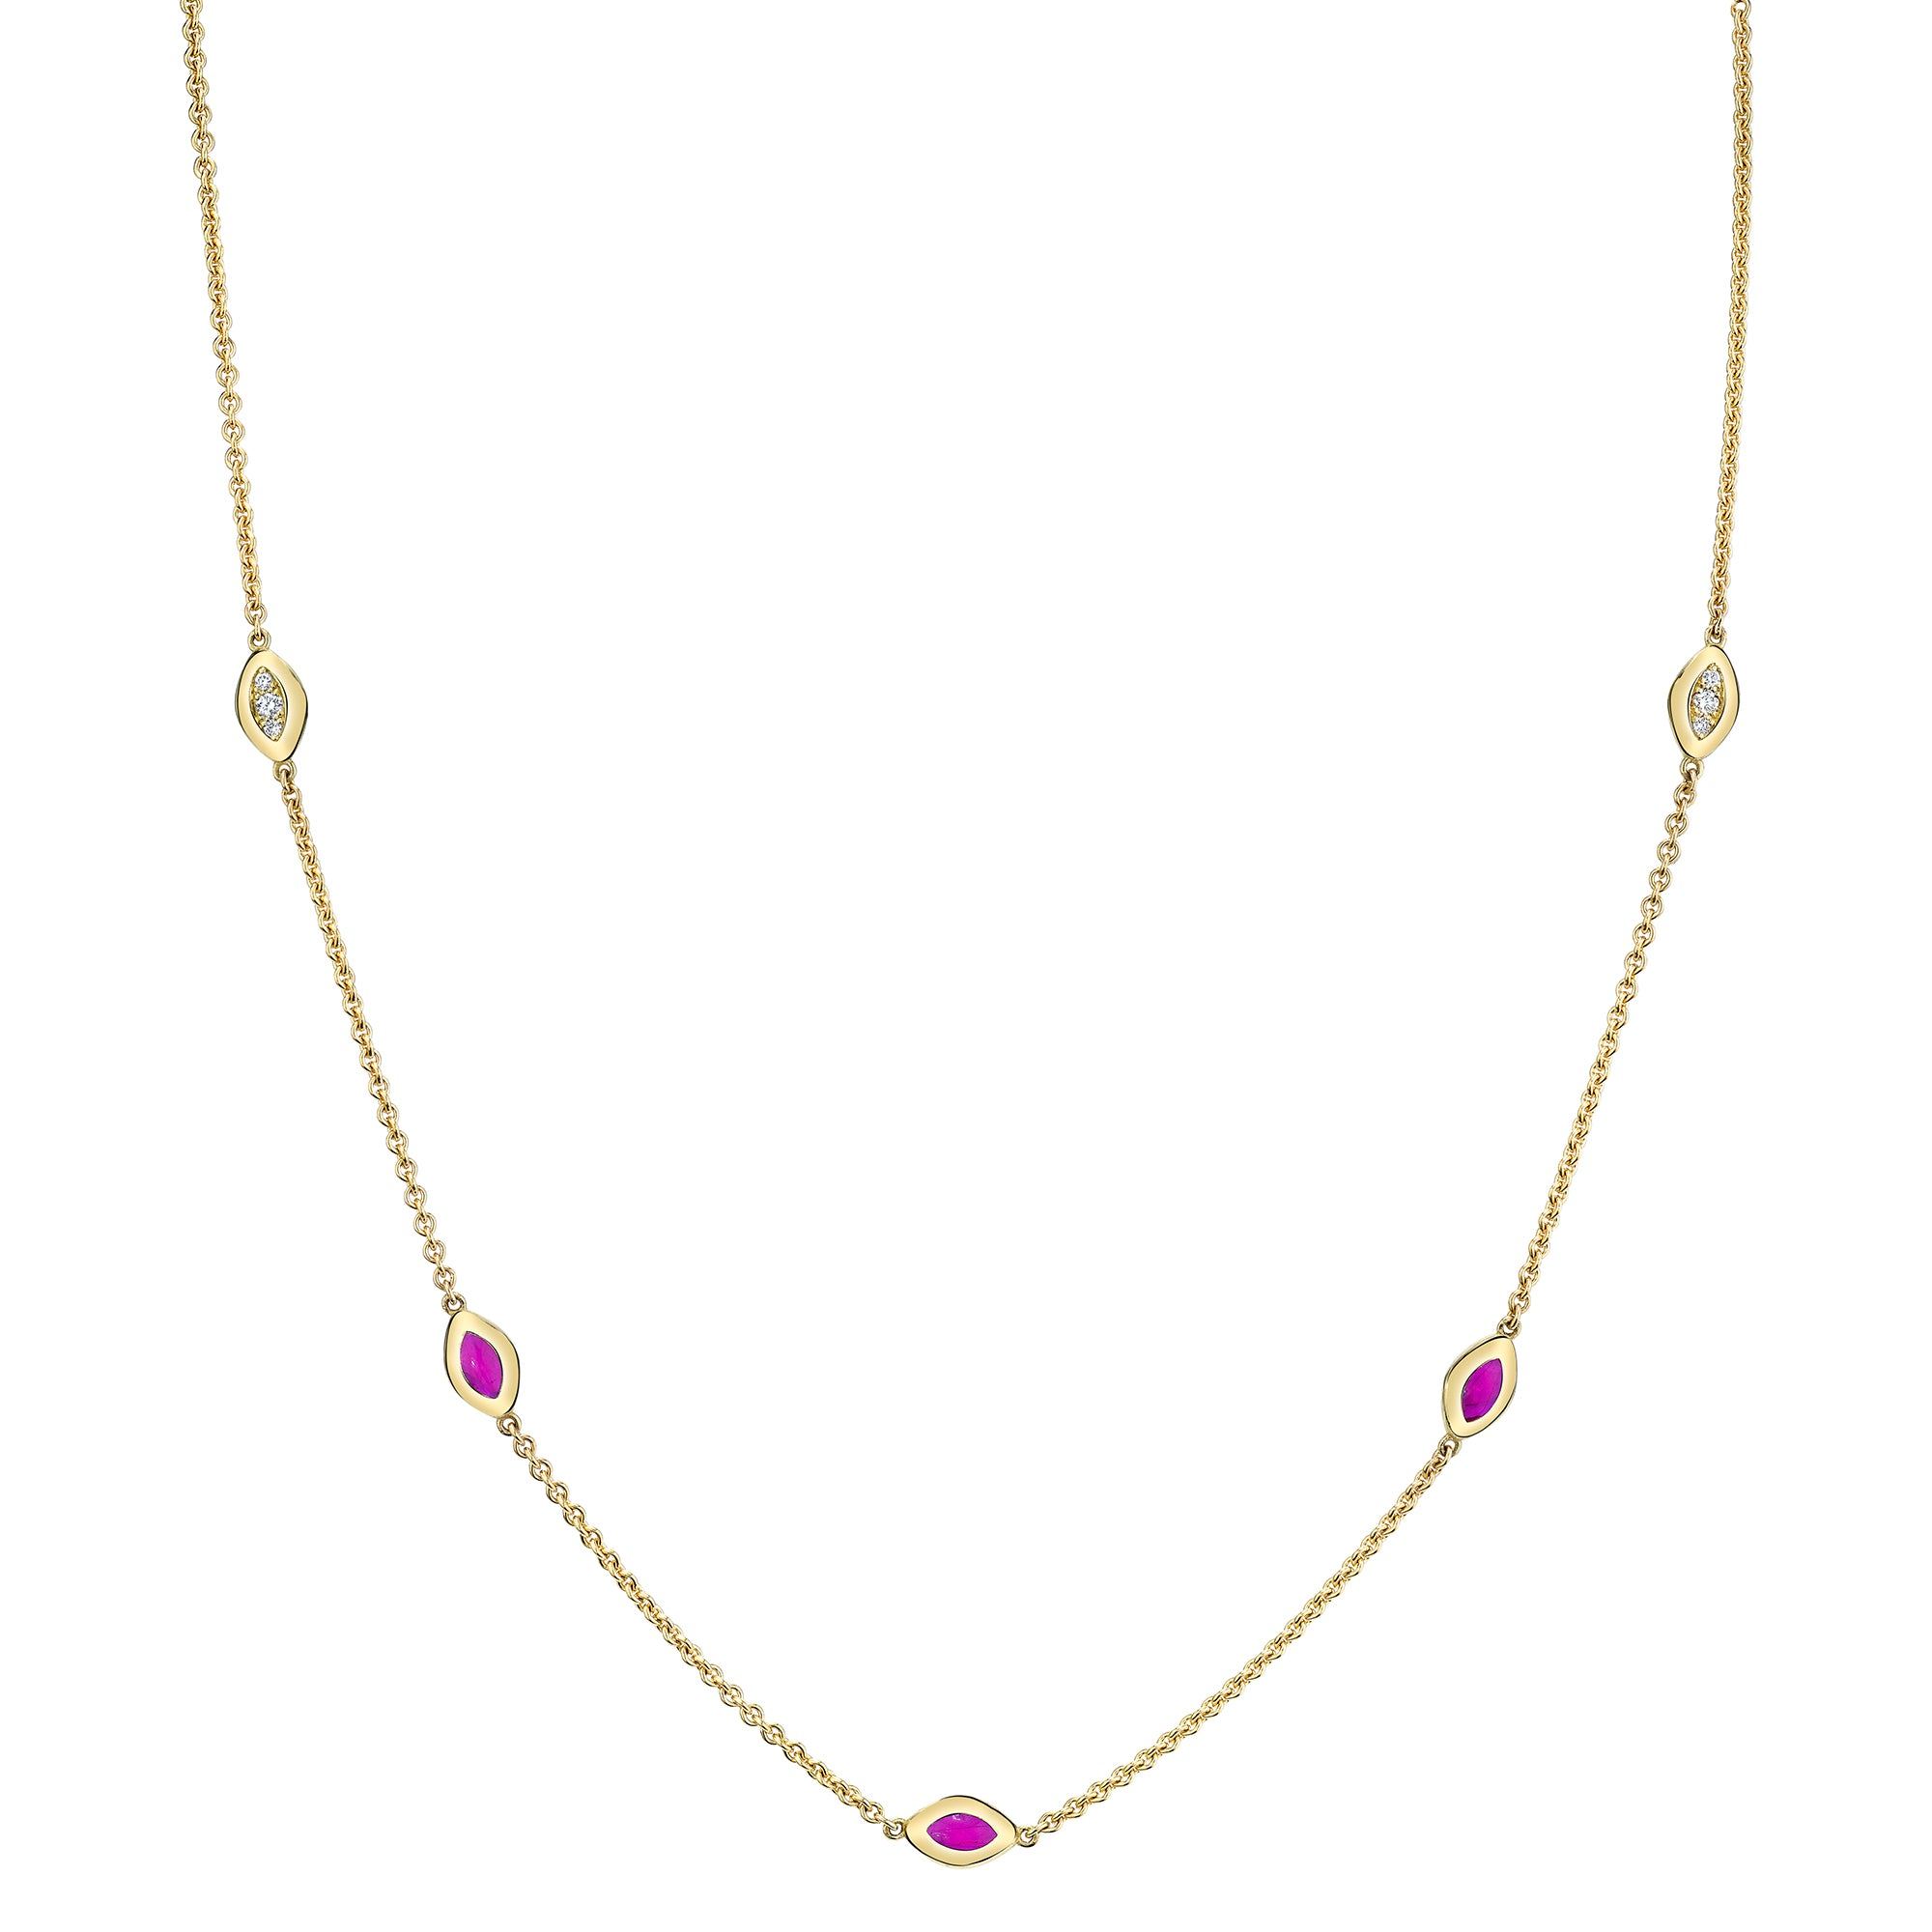 Five Link Necklace with Diamond and Purple Enamel - ANDY LIF Jewelry - Necklaces | Broken English Jewelry